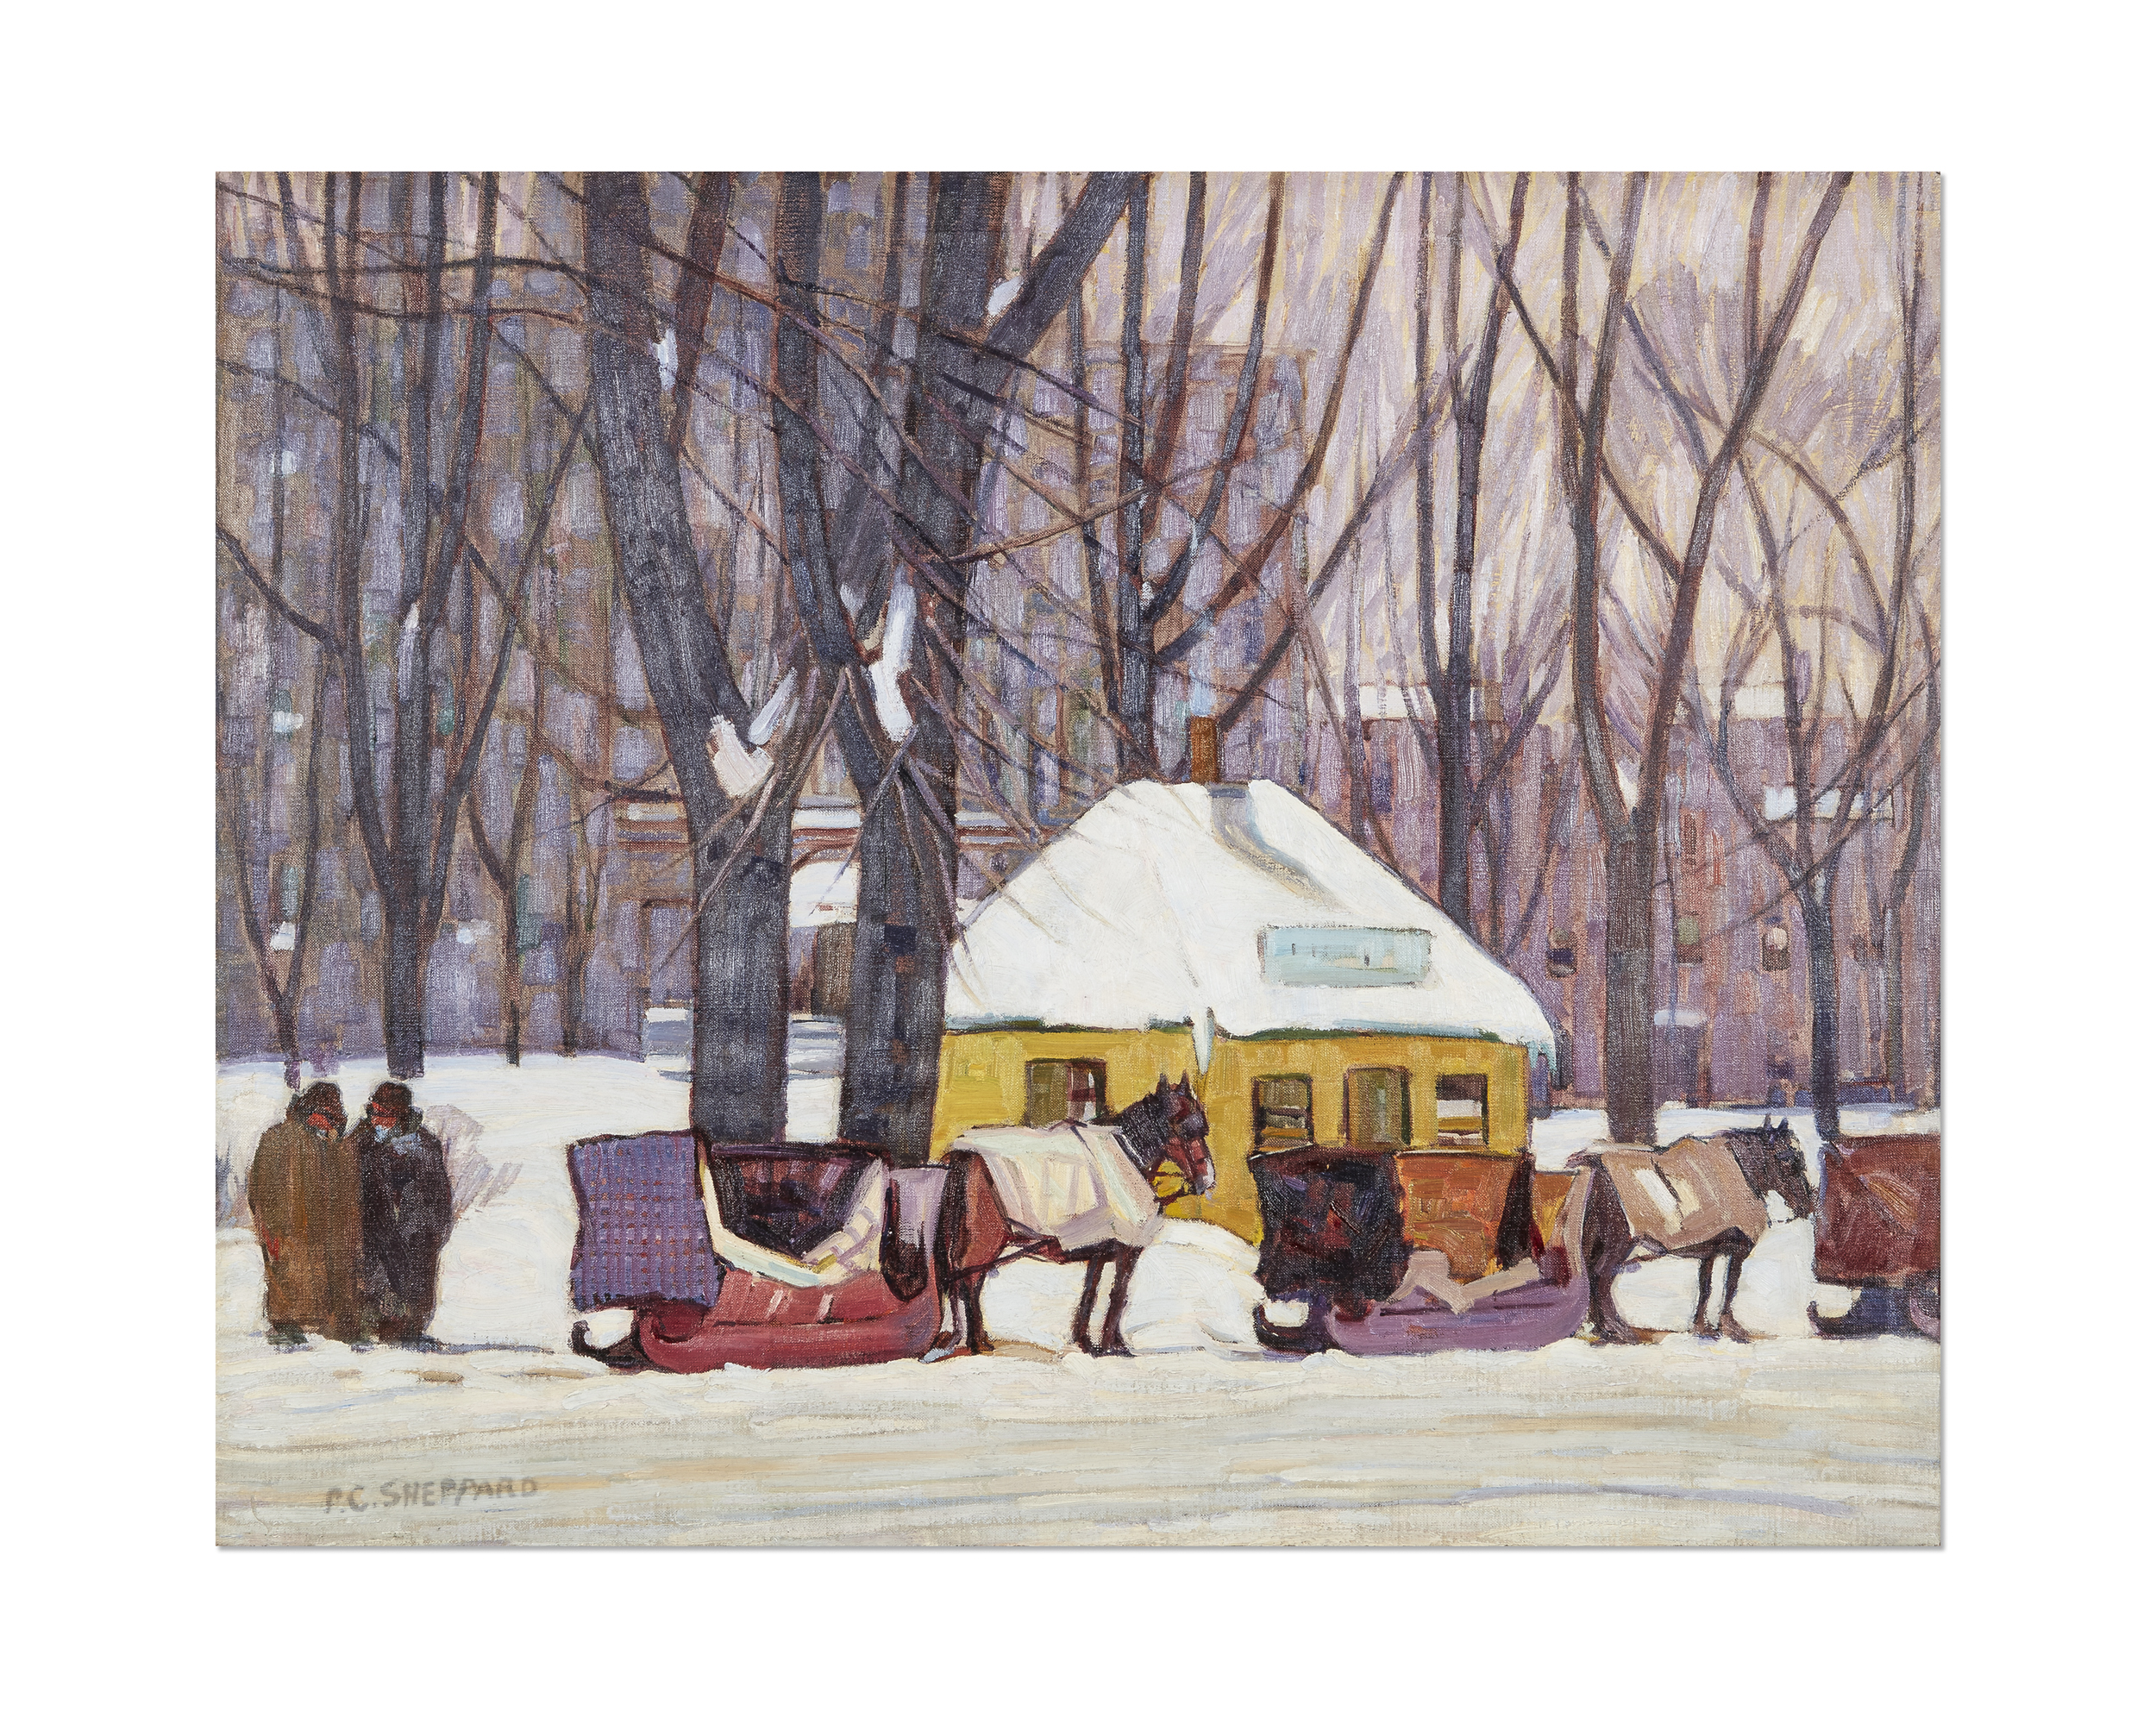 Cabstand, Montreal oil on canvas 1927 signed and on verso stamped with the estate stamp  24 x 30 in 61 x 76.2cm